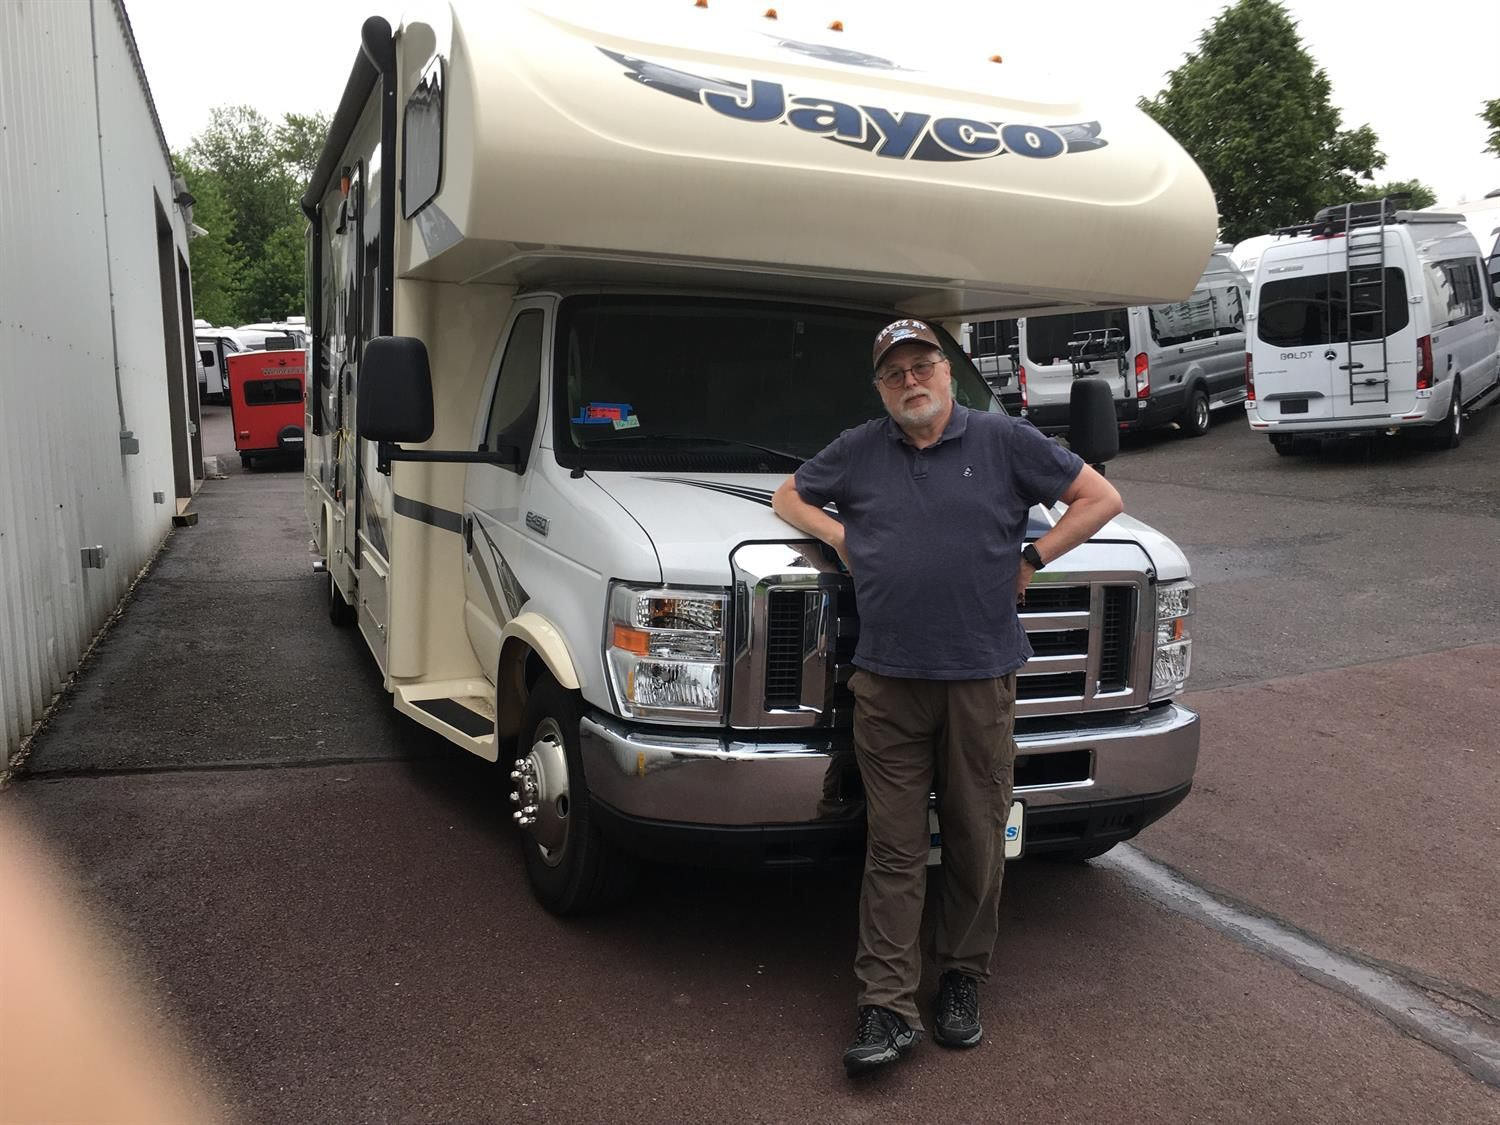 John Wishing You Many Miles Of Smiles And Congratulations On Your 2017 Jayco Greyhawk All The Best Fretz Rv And Al Papa In 2020 Recreational Vehicles Jayco Rv